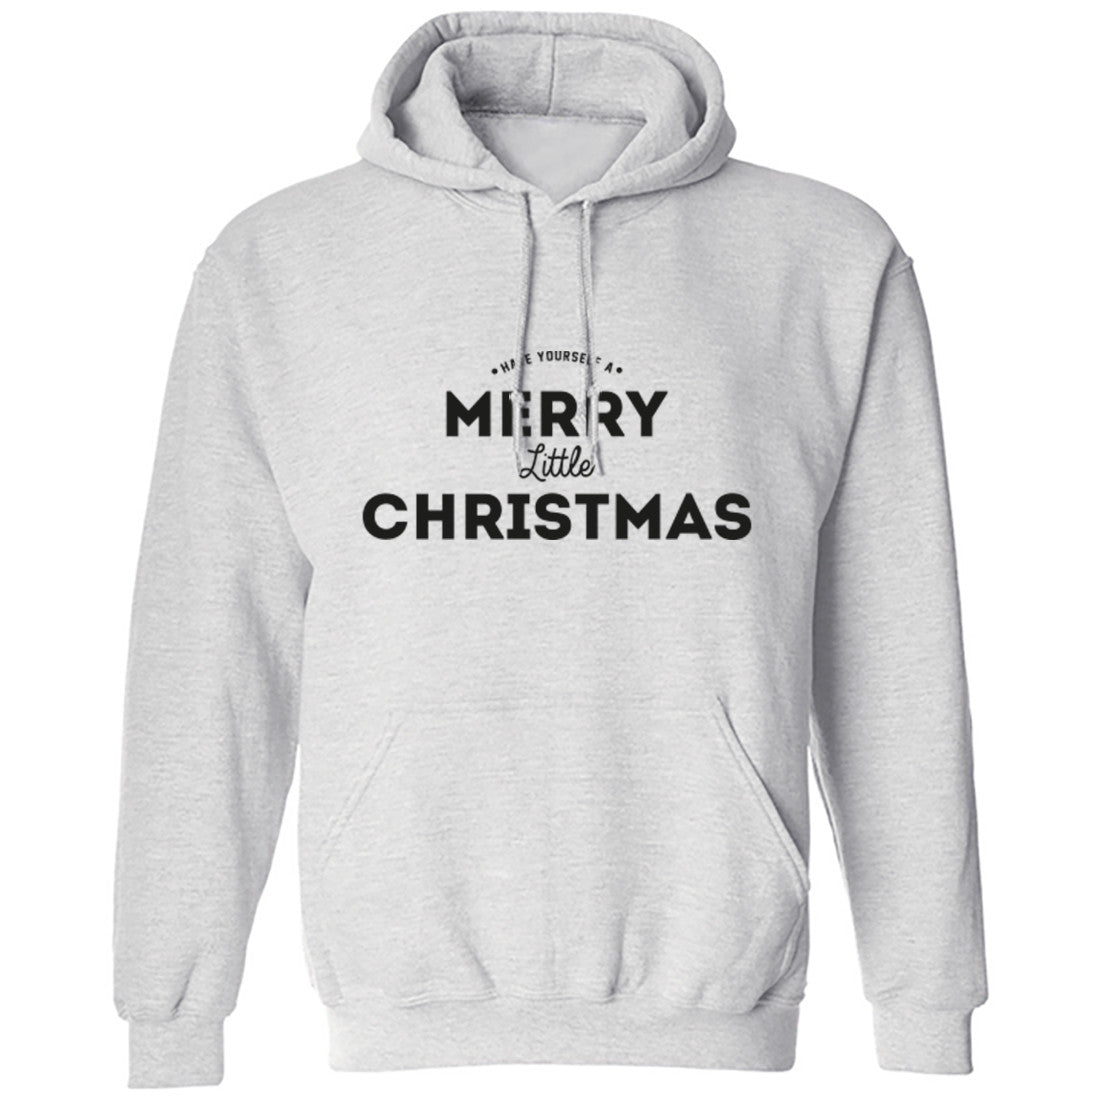 Have Yourself A Merry Little Christmas Unisex Hoodie K0141 - Illustrated Identity Ltd.